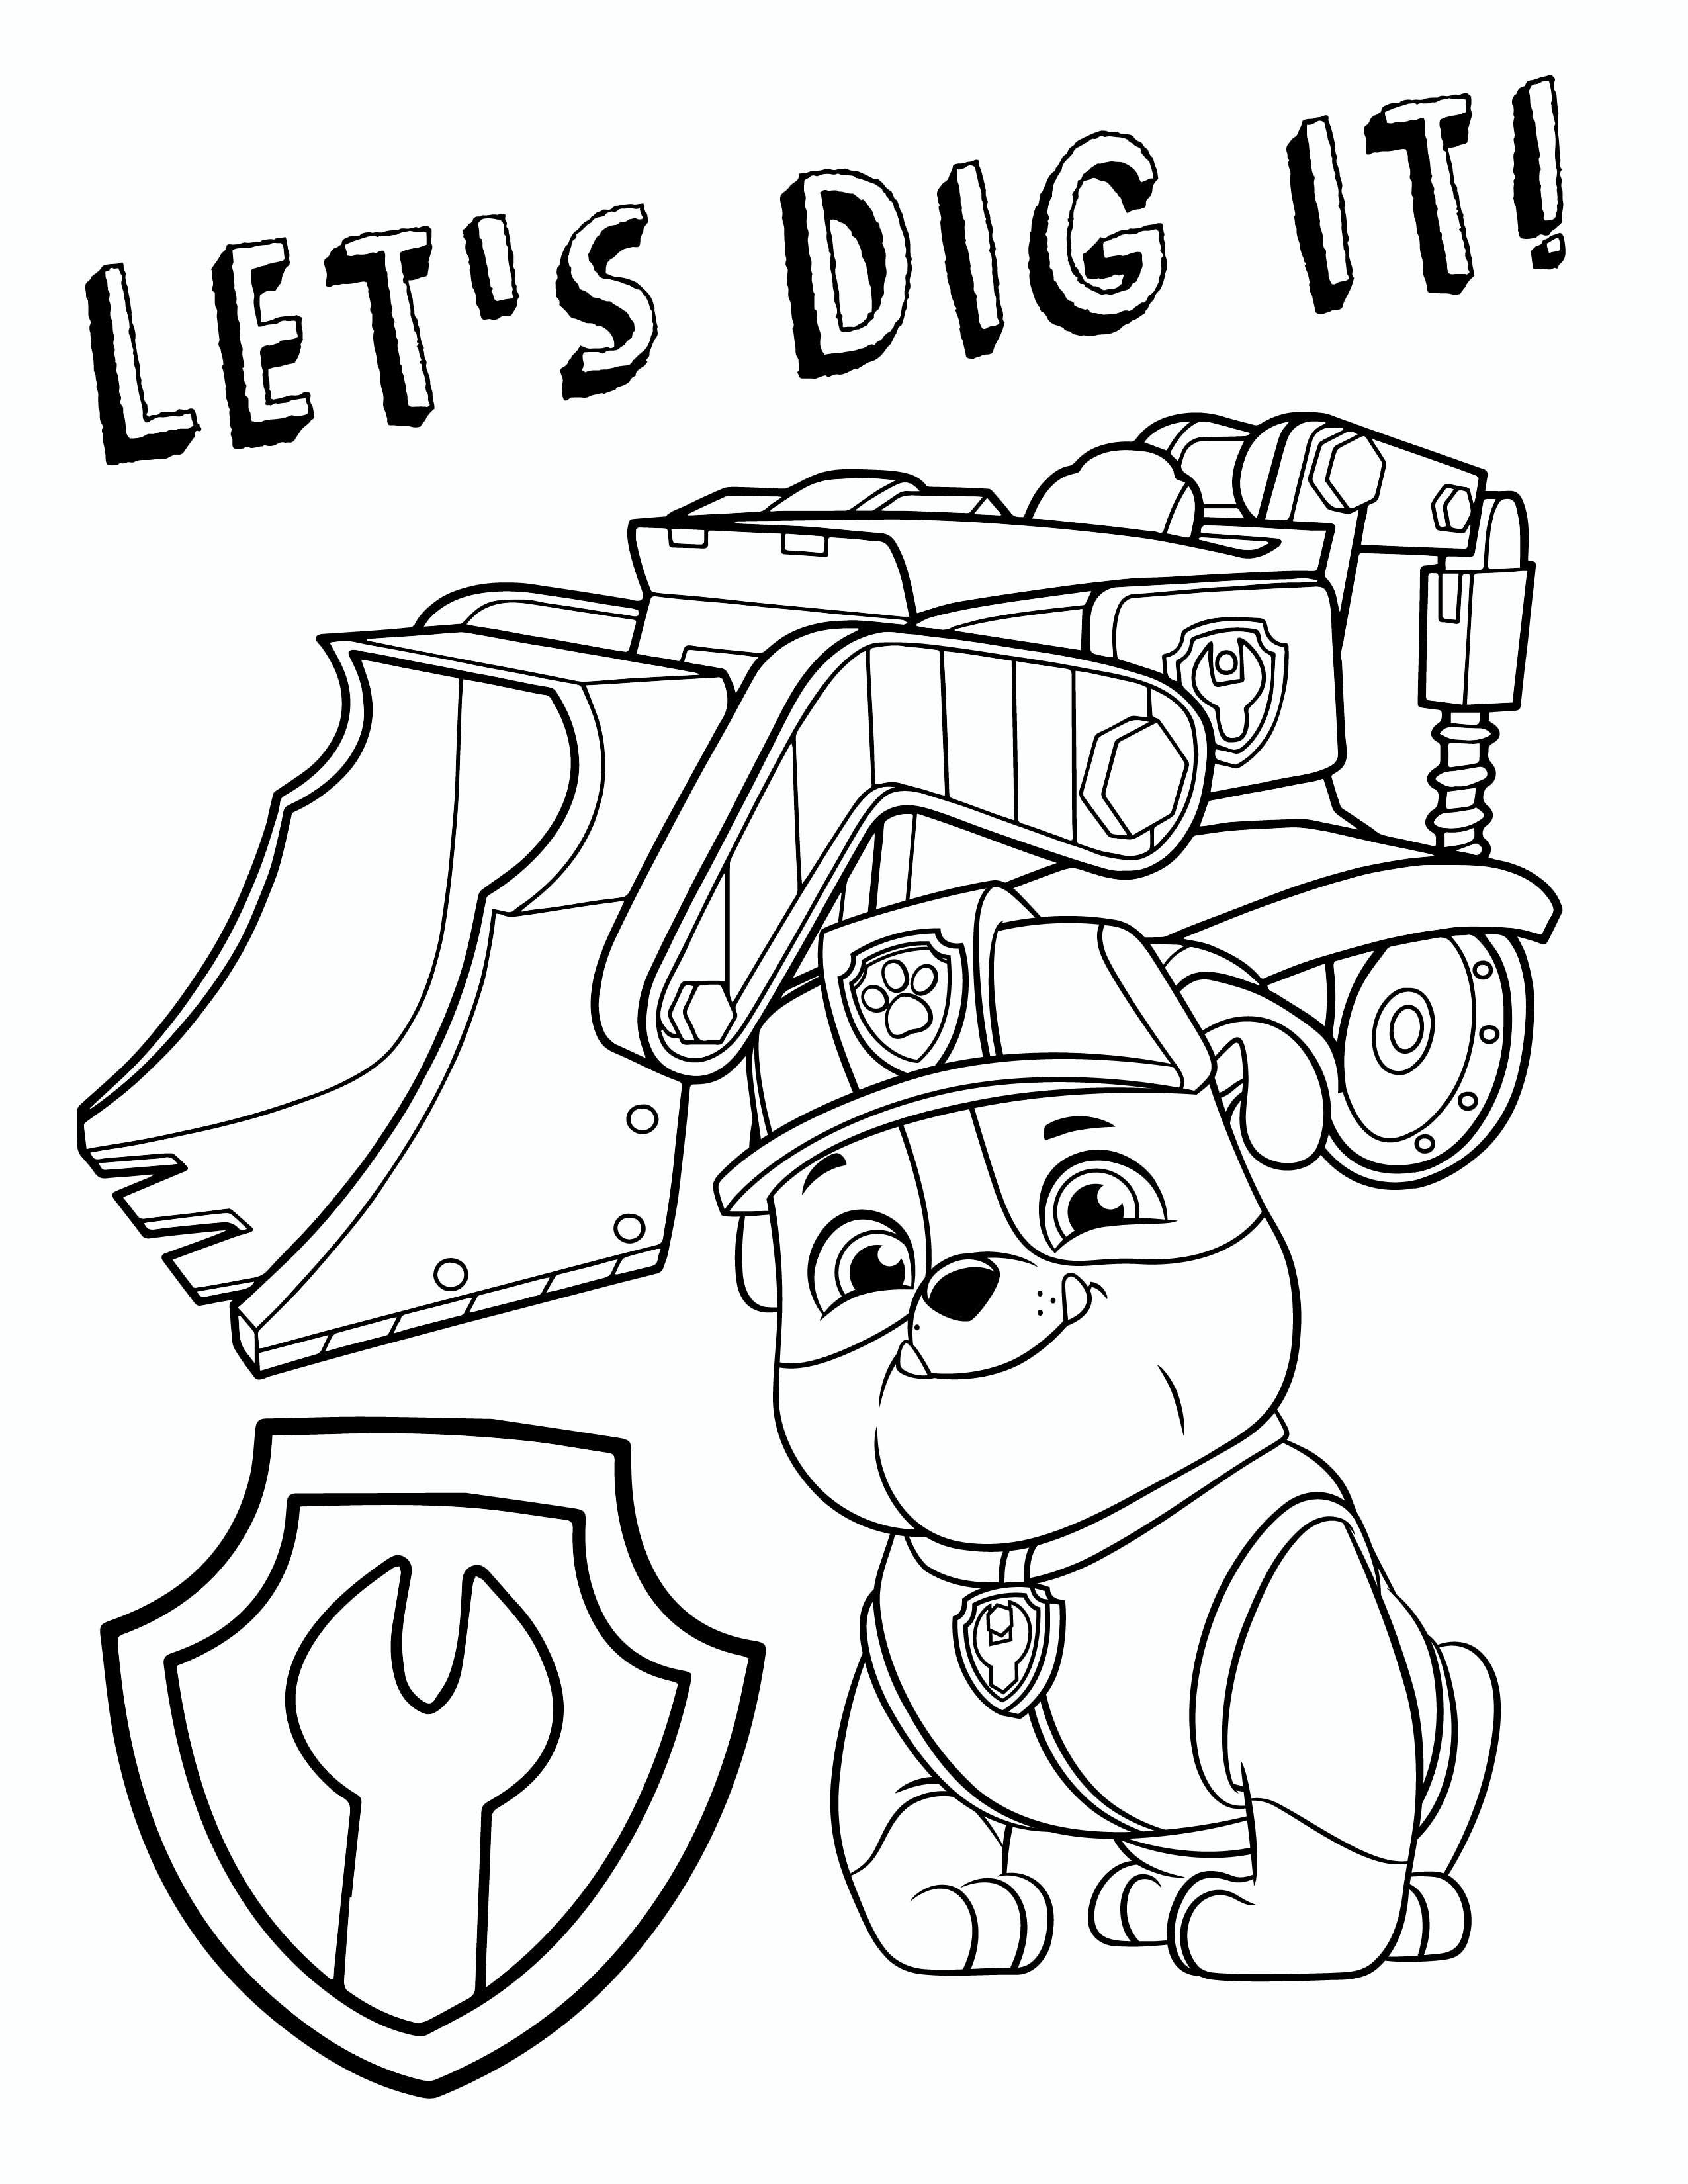 Paw Patrol Coloring Pages Free Paw Patrol Coloring Pages Paw